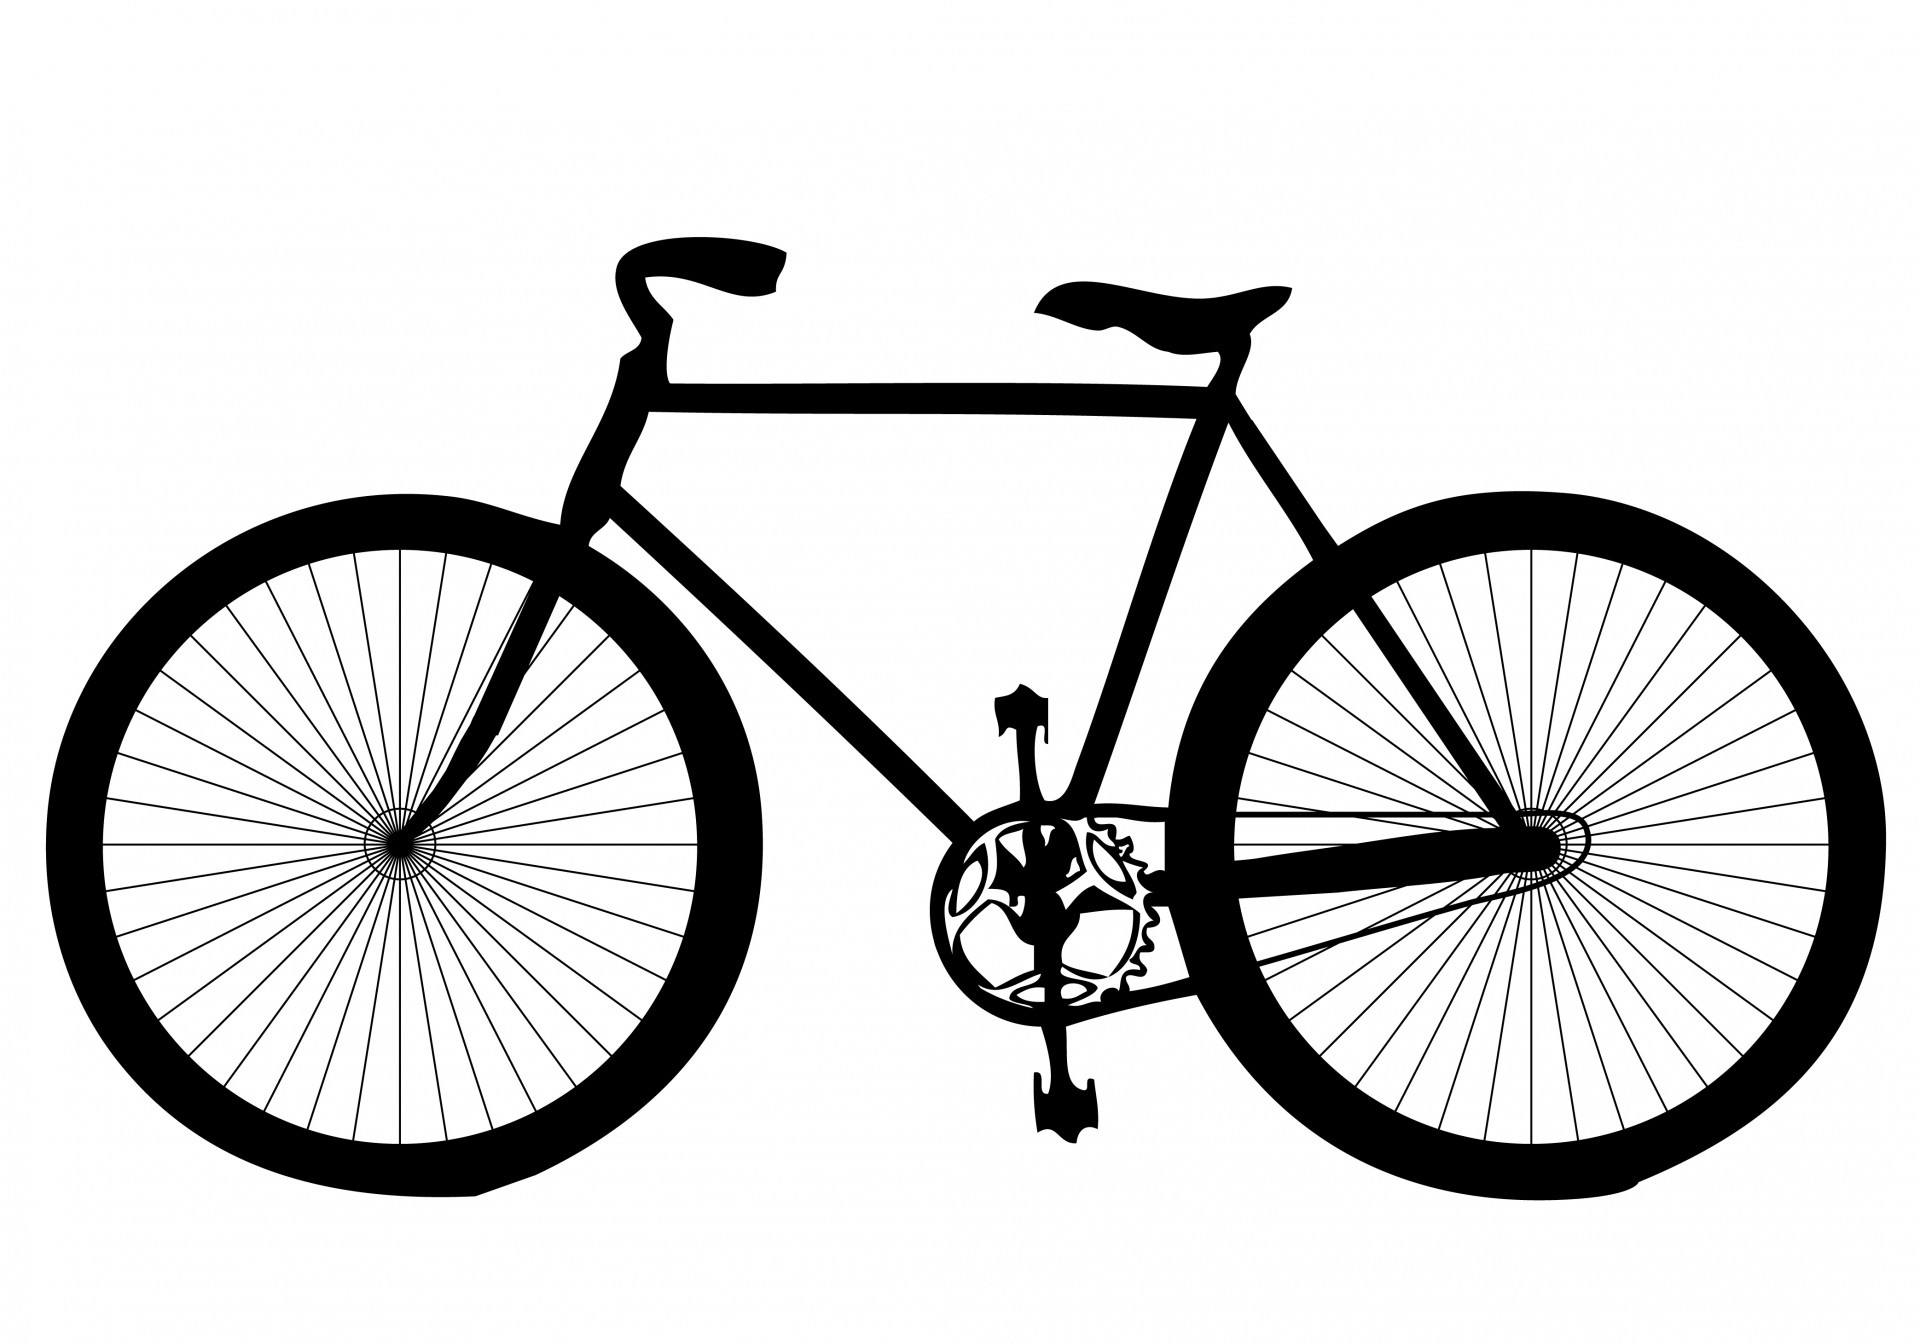 Bicycle free stock photo. Biking clipart public domain